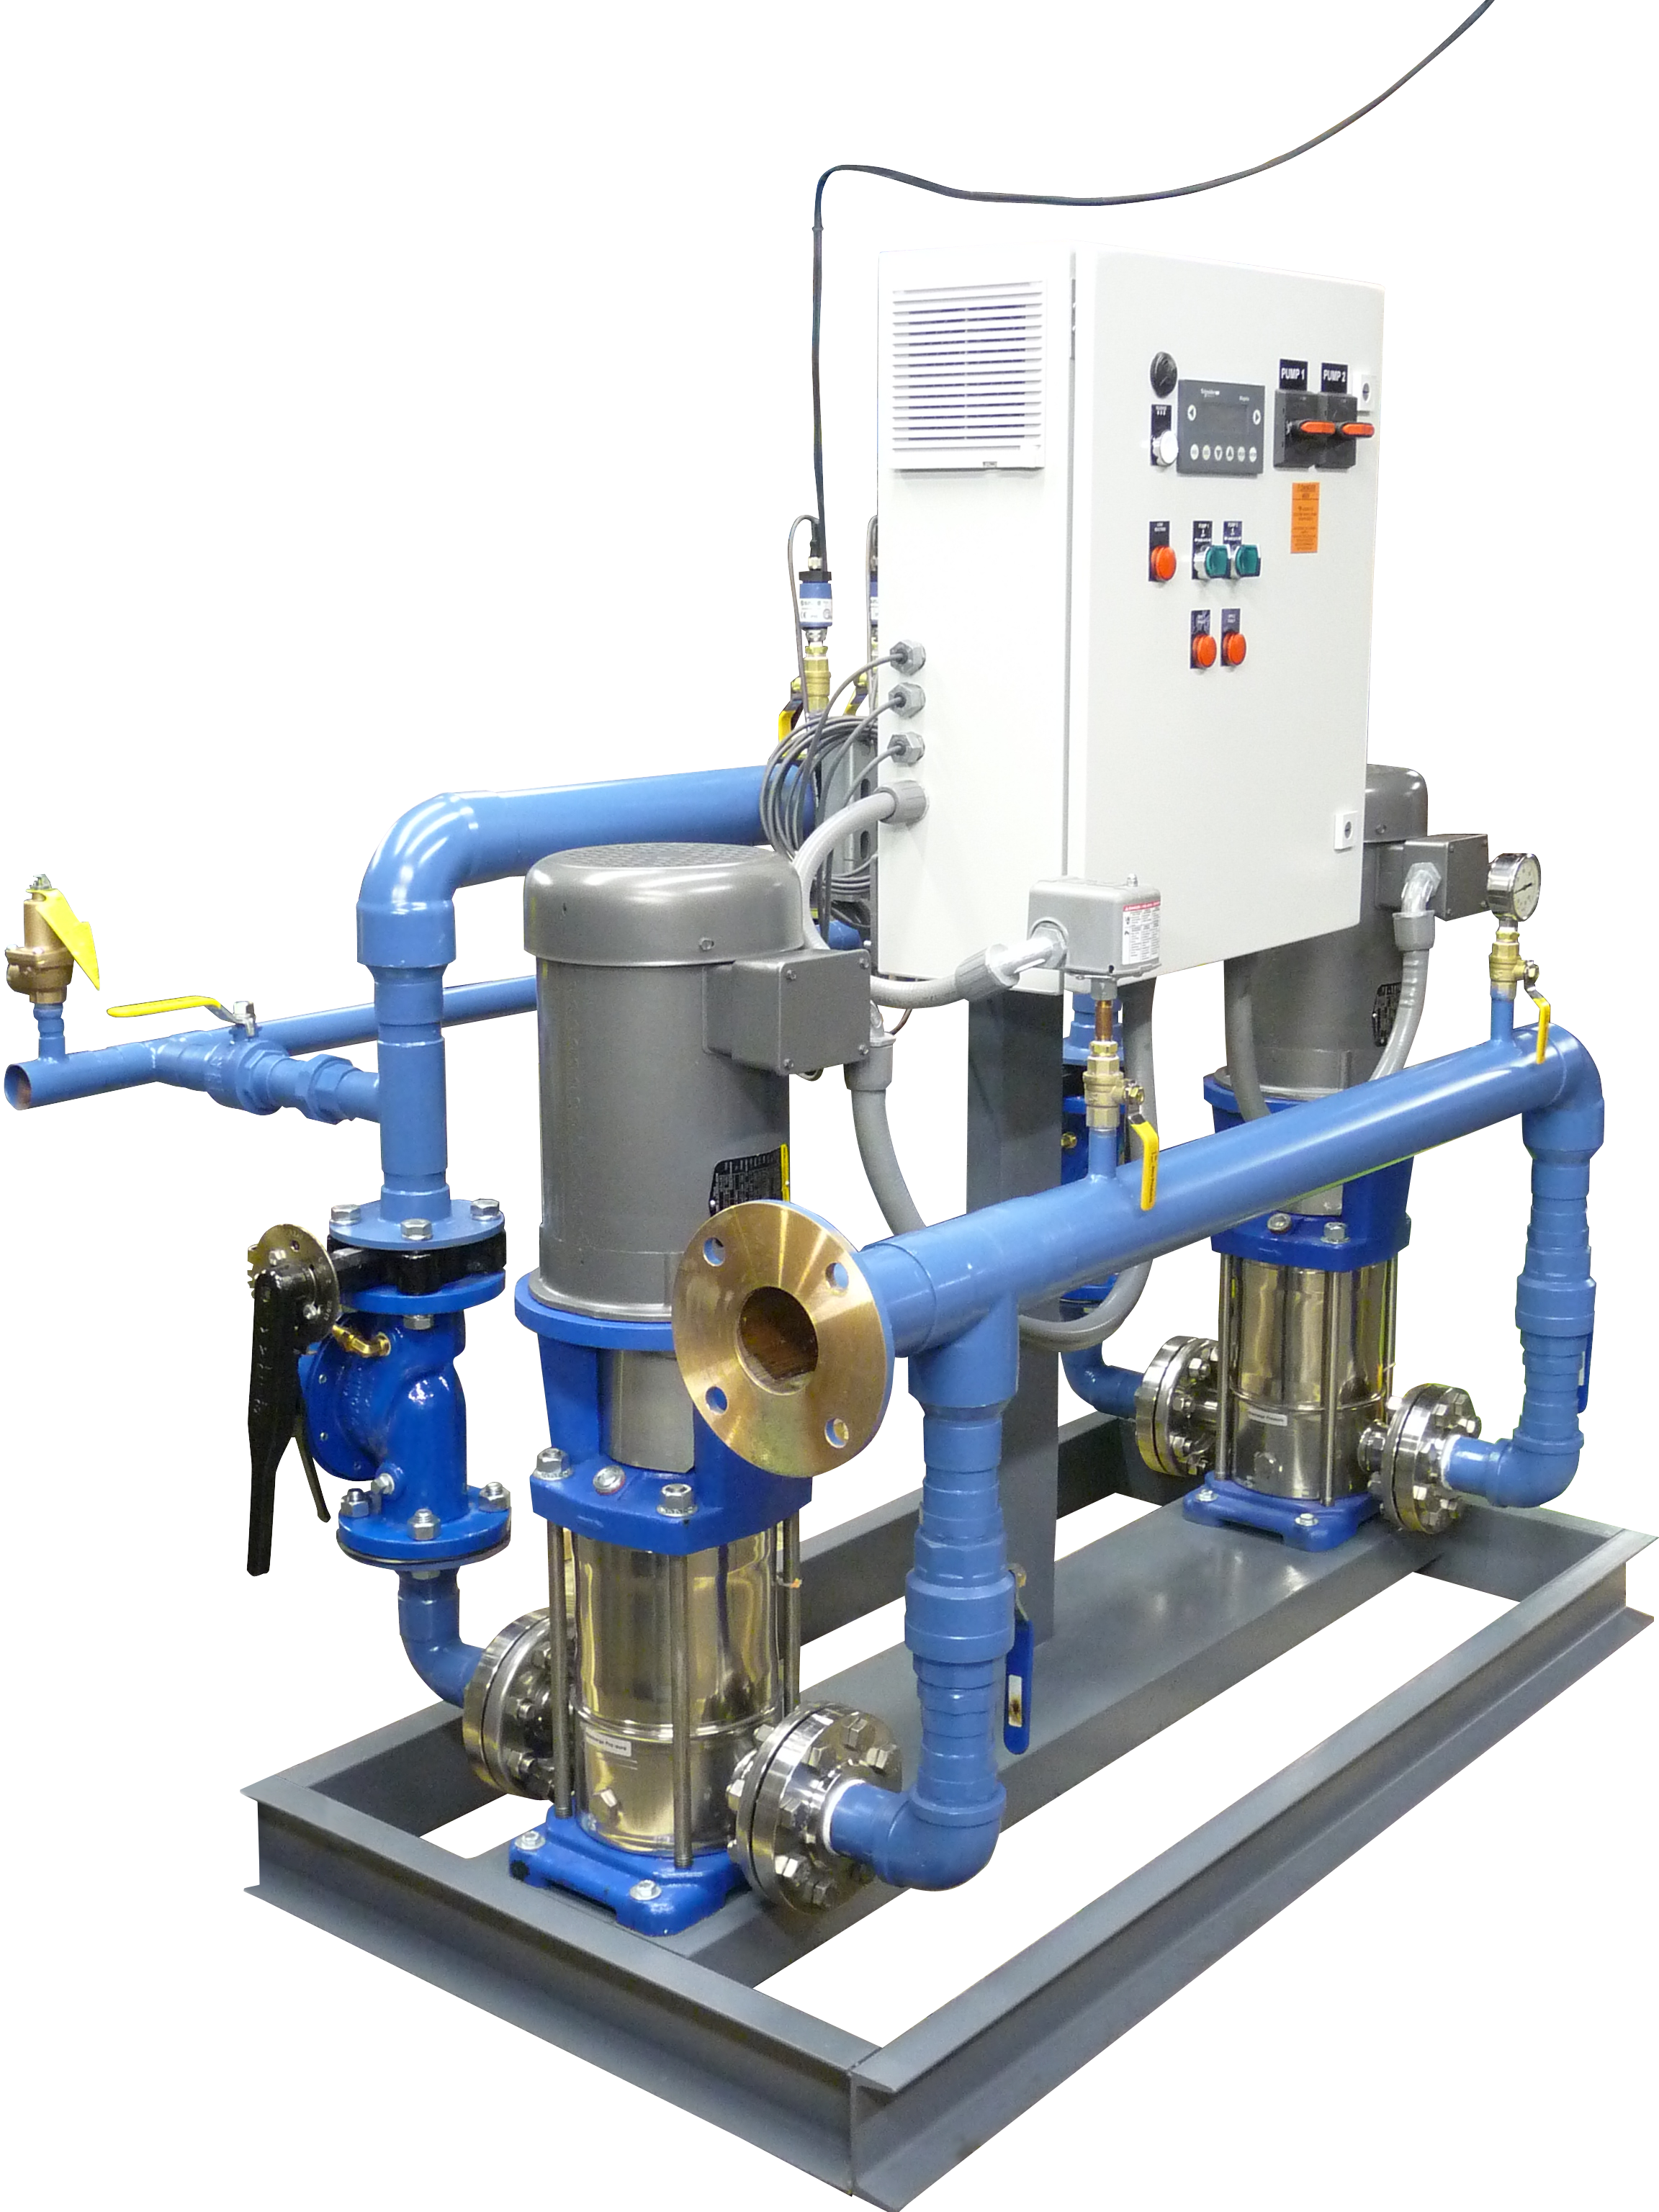 Water Pressure Booster System Air Flow Pump Corp